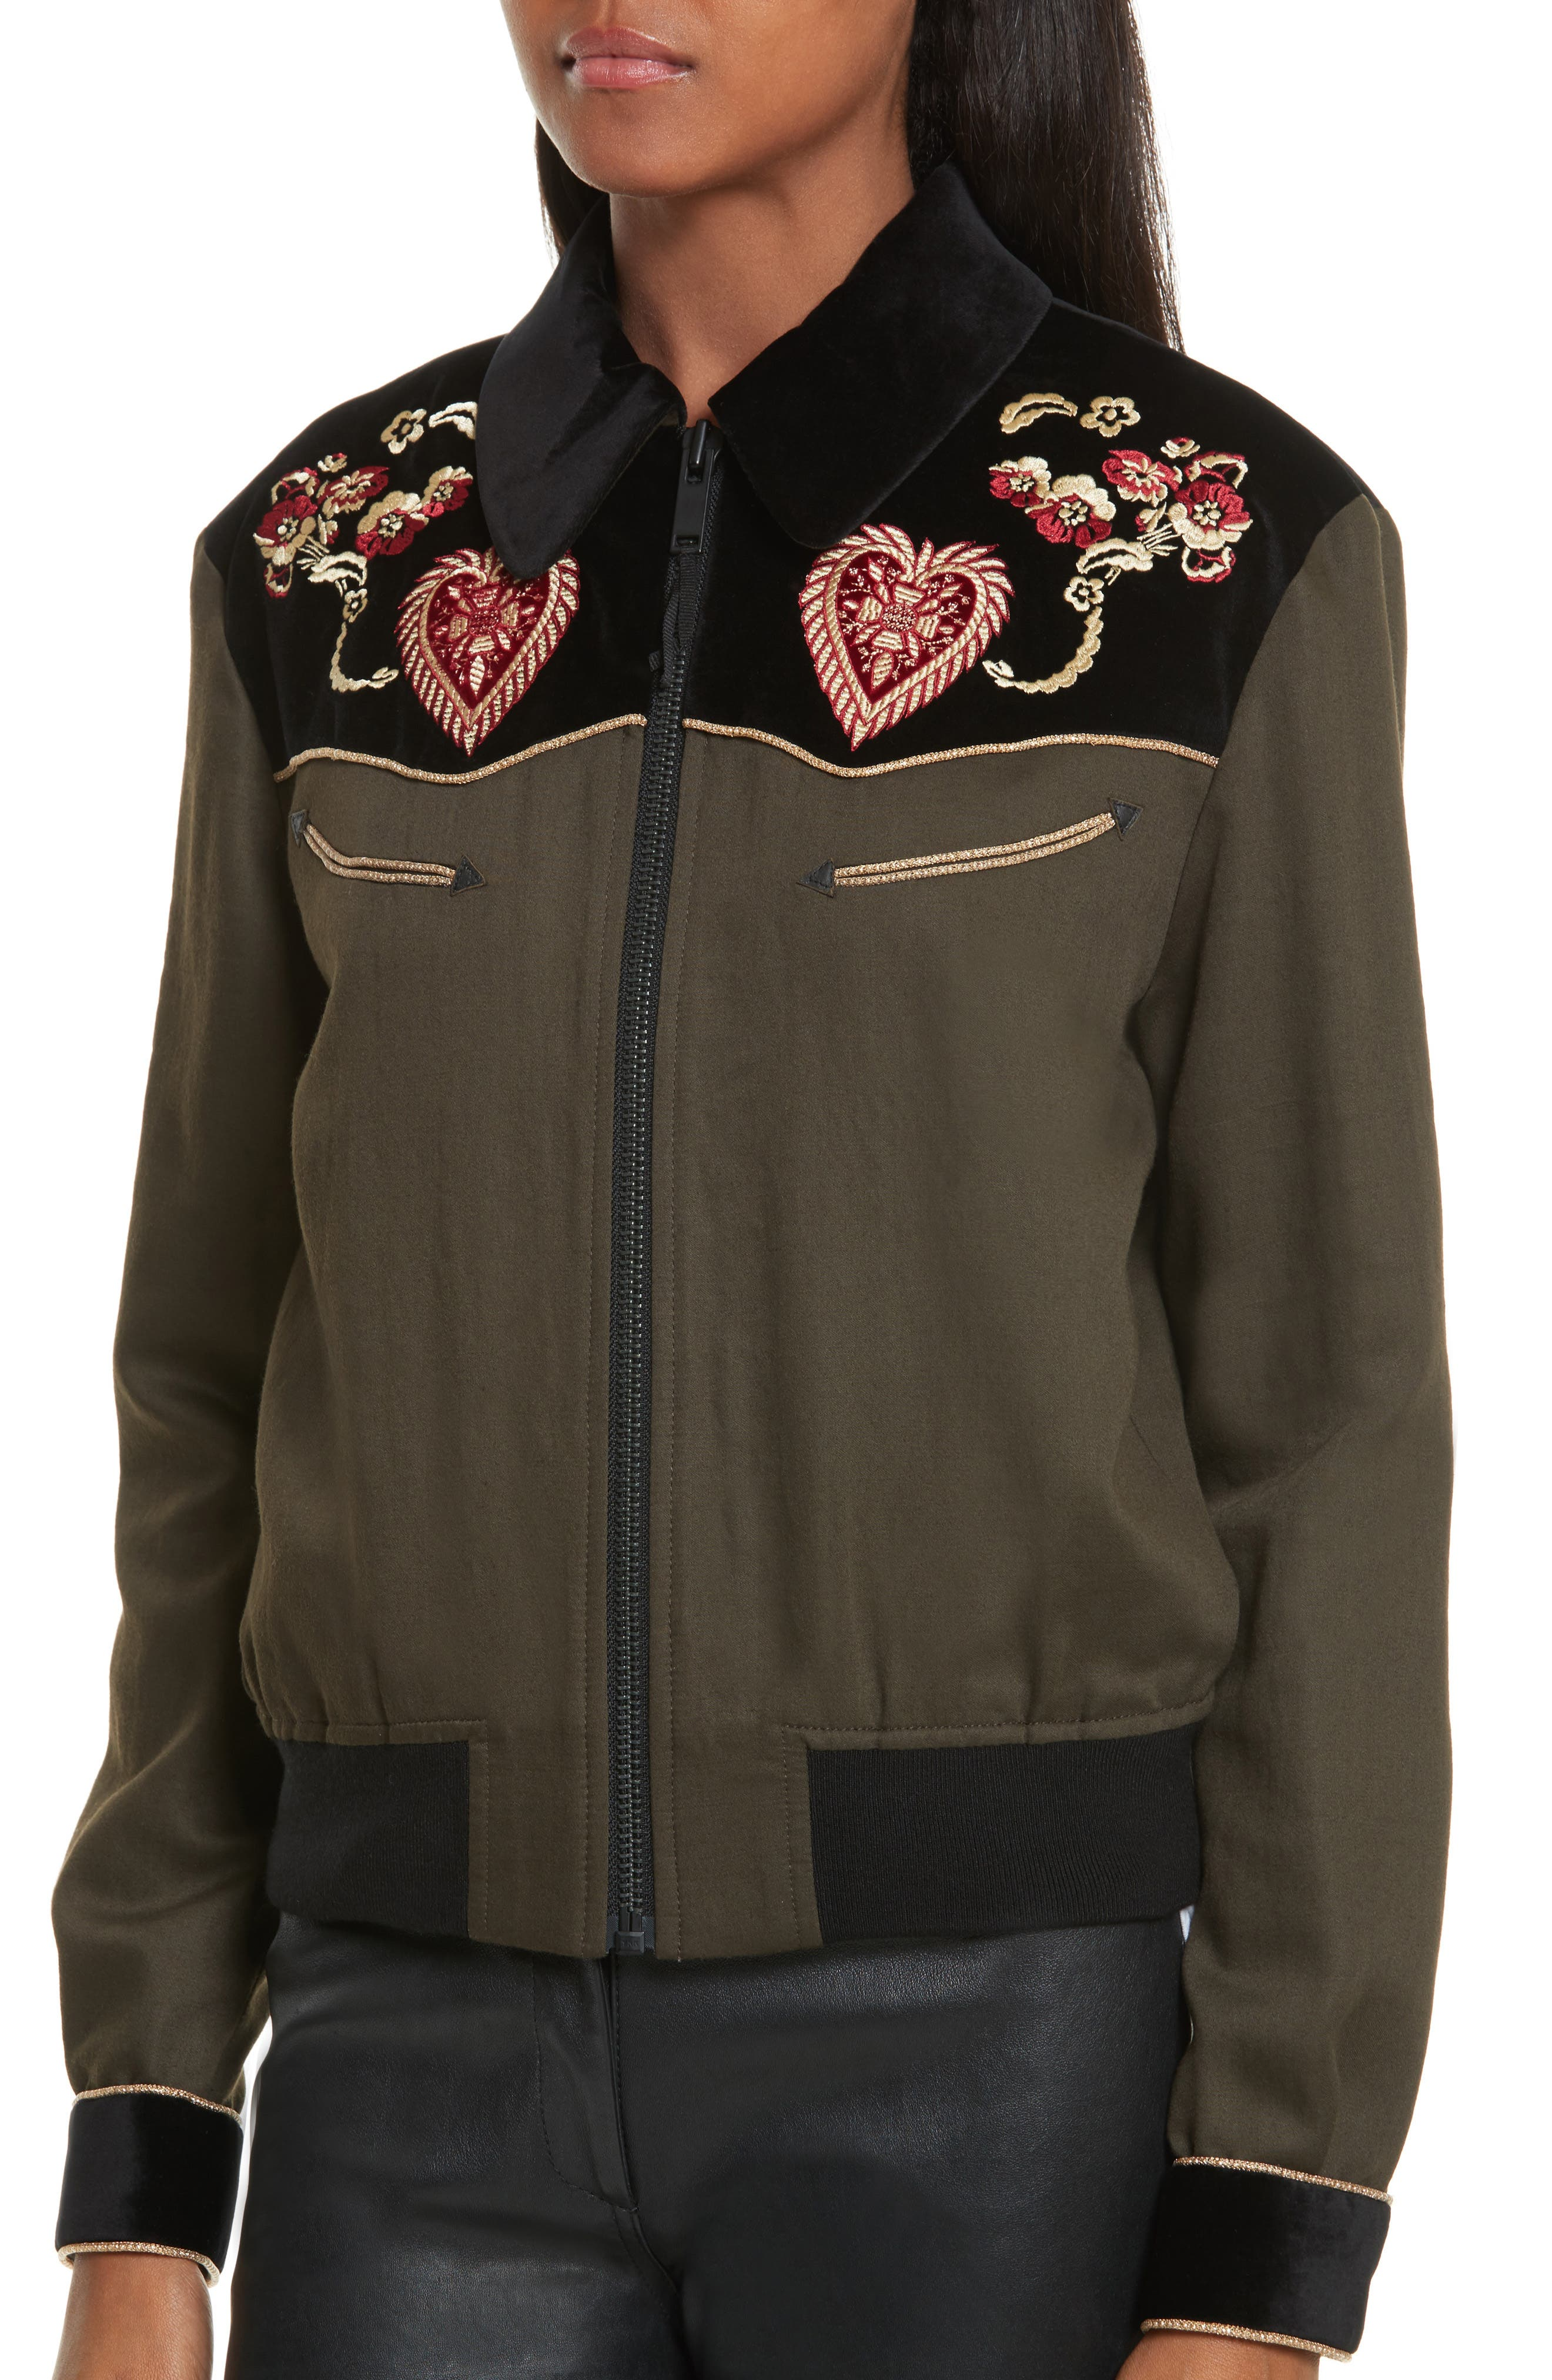 Contrast Embroidery Bomber Jacket,                             Alternate thumbnail 4, color,